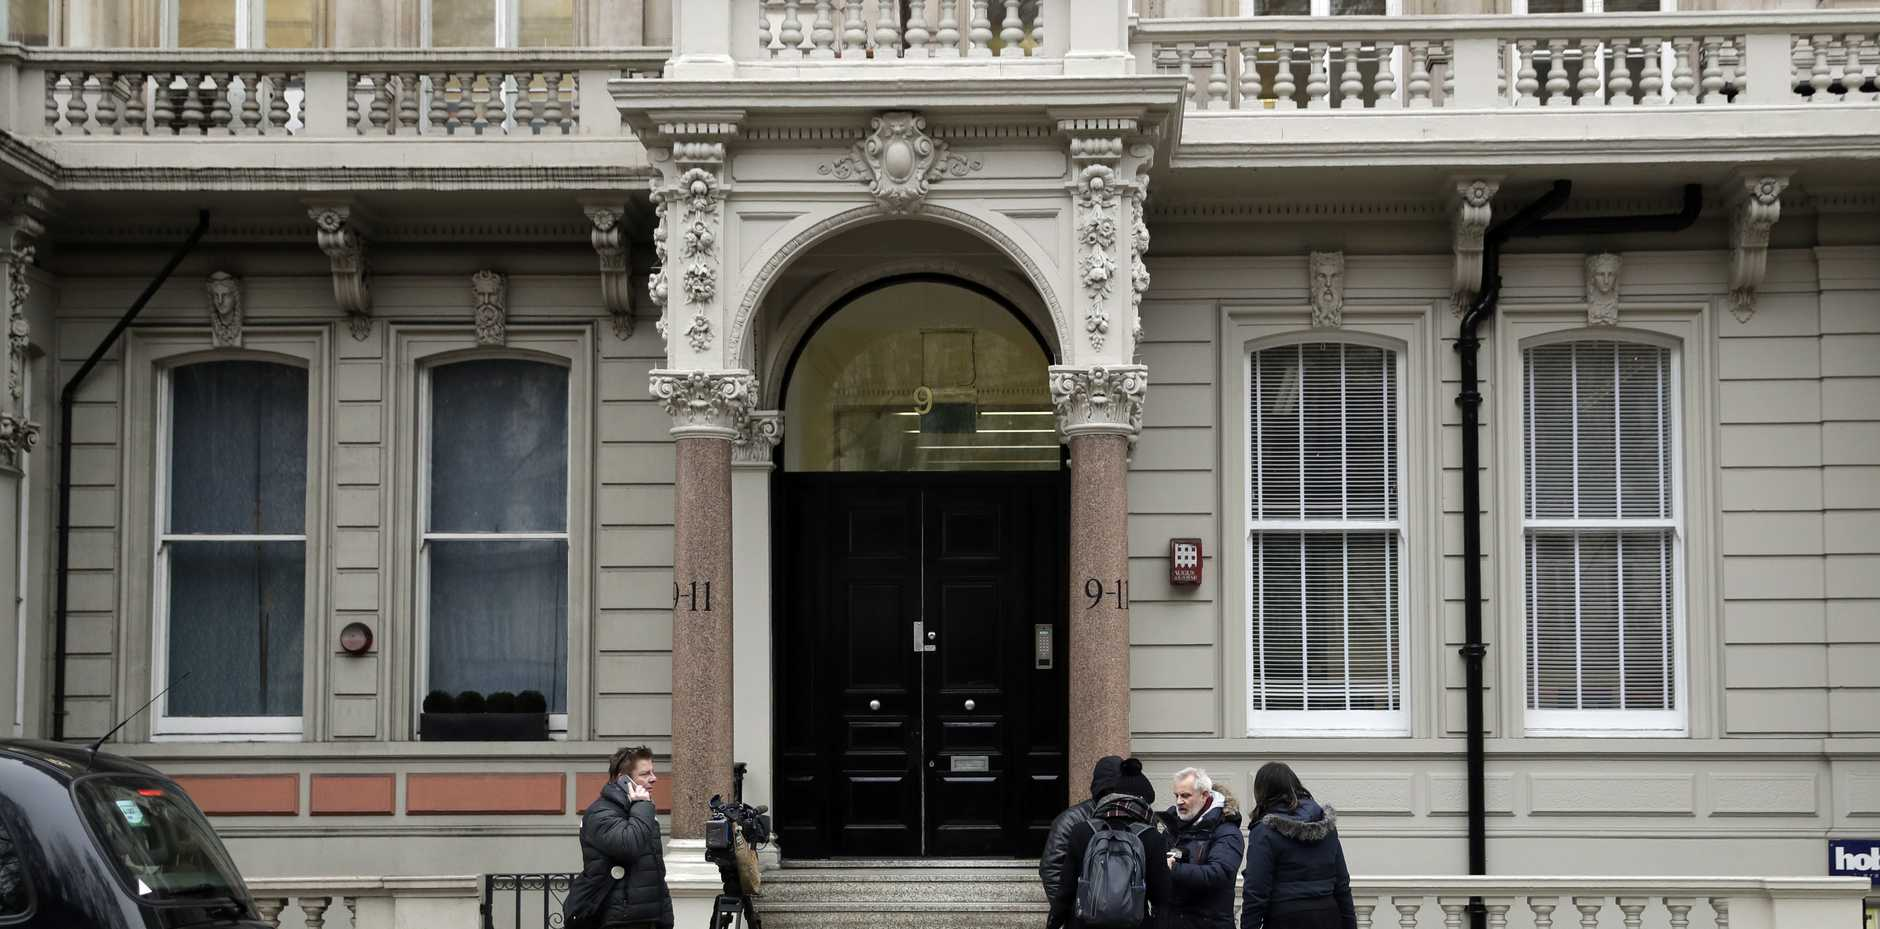 A view of the building where offices of Orbis Business Intelligence Ltd are located, in central London, Thursday Jan. 12, 2017. An unsubstantiated dossier on US President-elect Donald Trump was compiled by a former Western intelligence operative, identified Wednesday by The Wall Street Journal as Christopher Steele of London-based Orbis Business Intelligence.